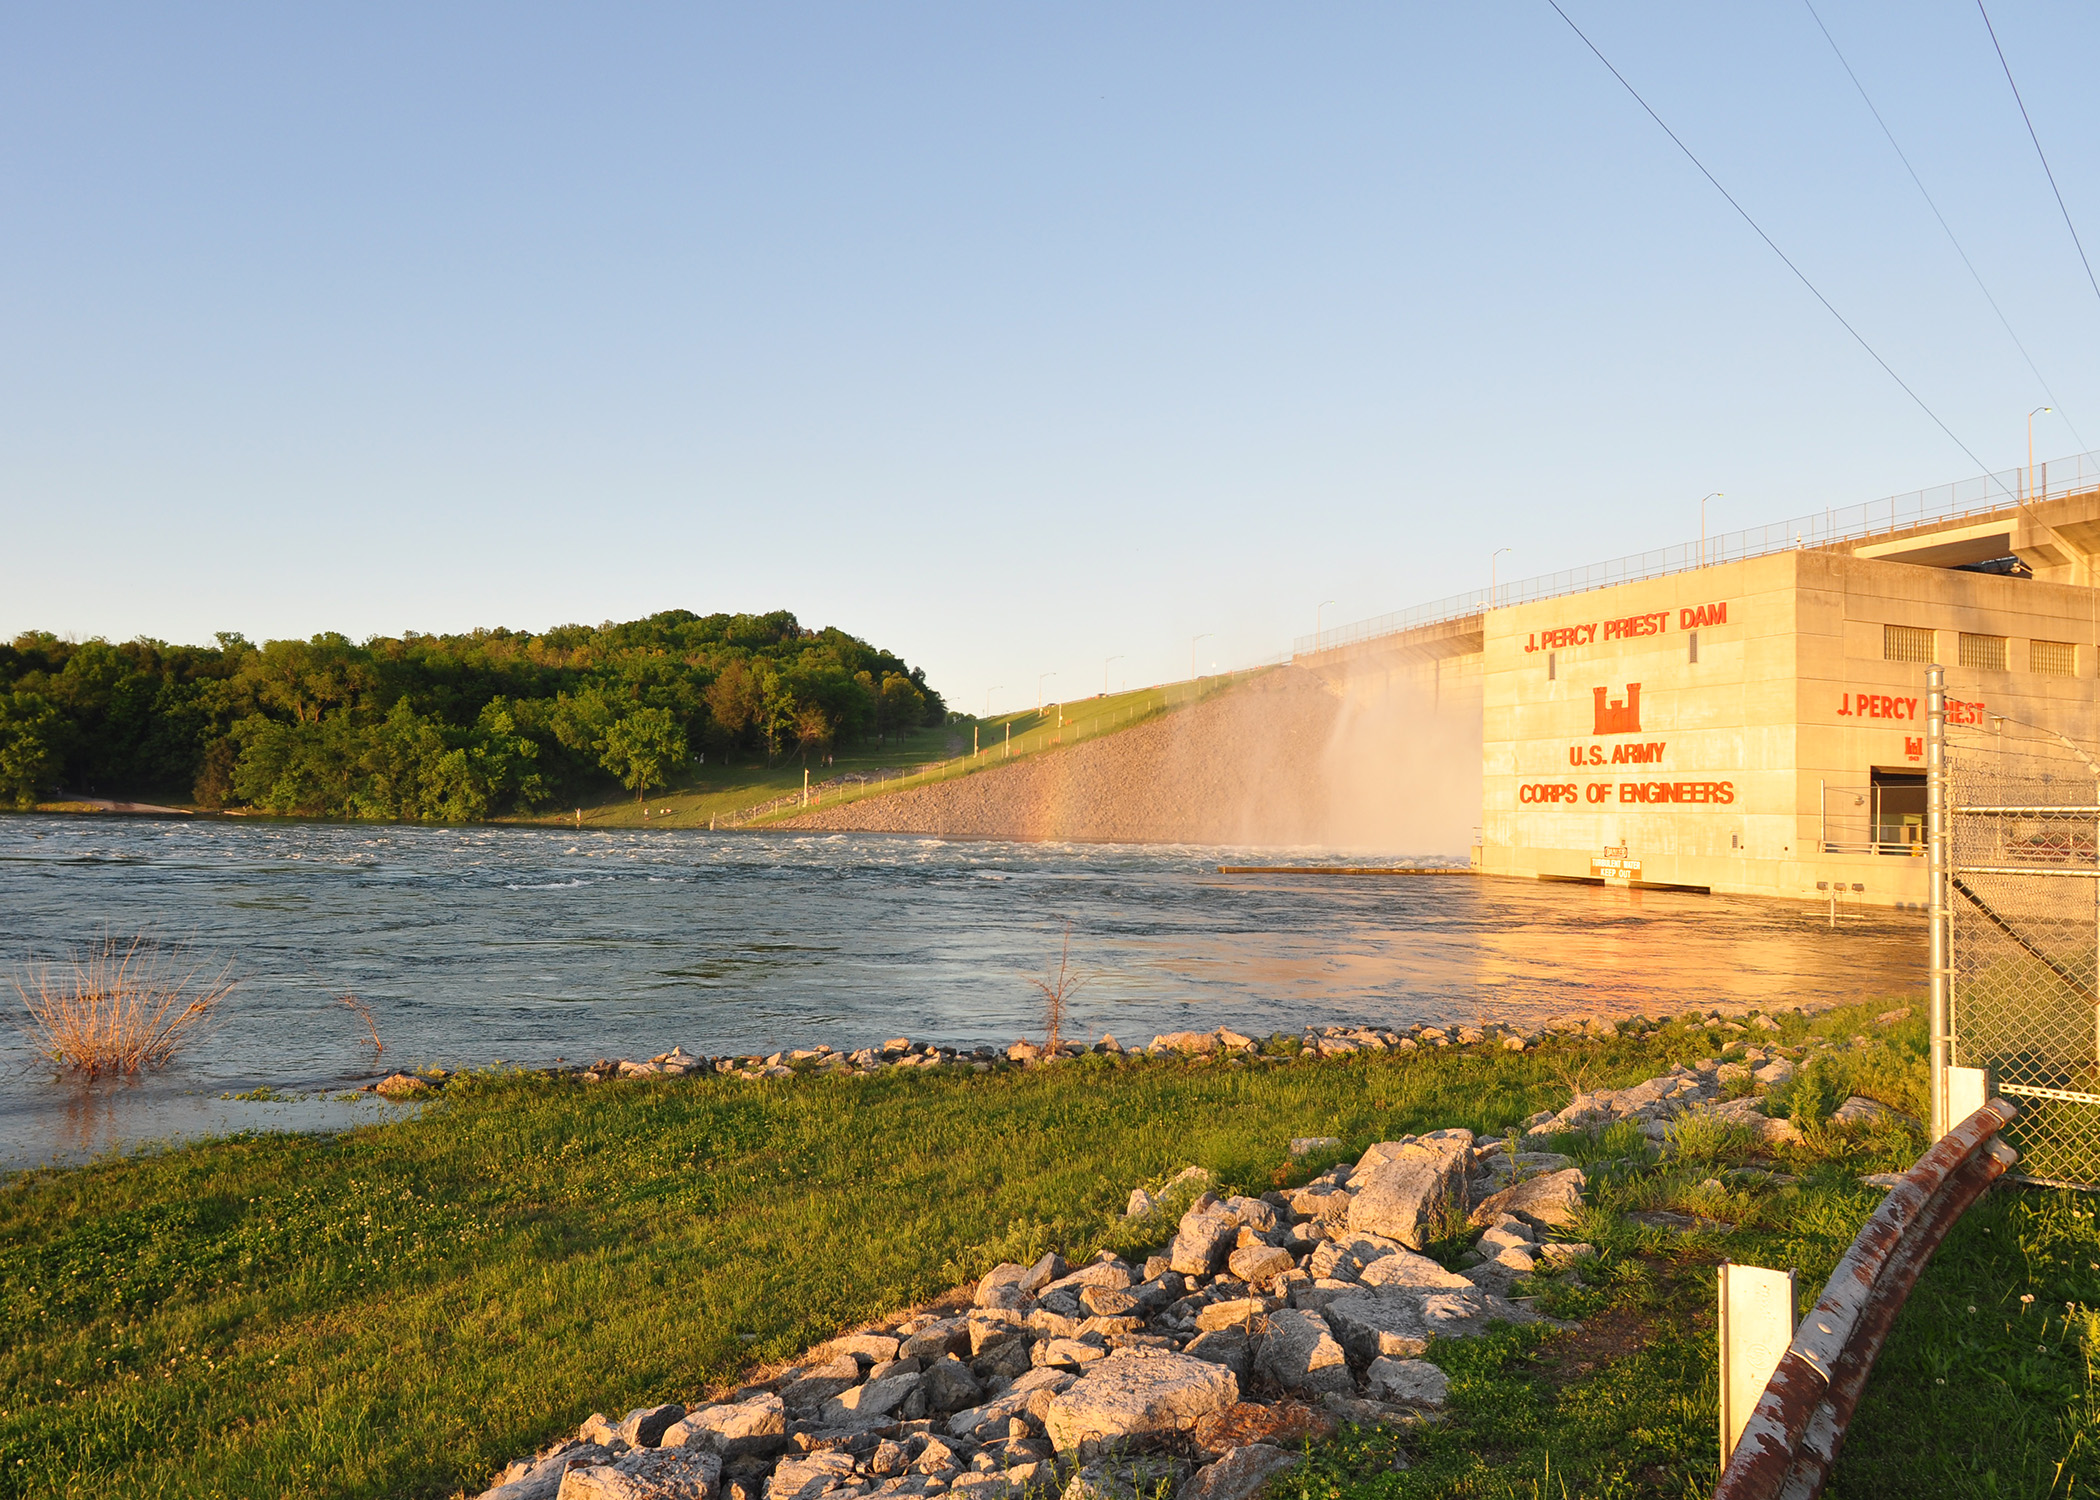 J. Percy Priest Dam in early May 2010. (USACE Photo by Mark Rankin)